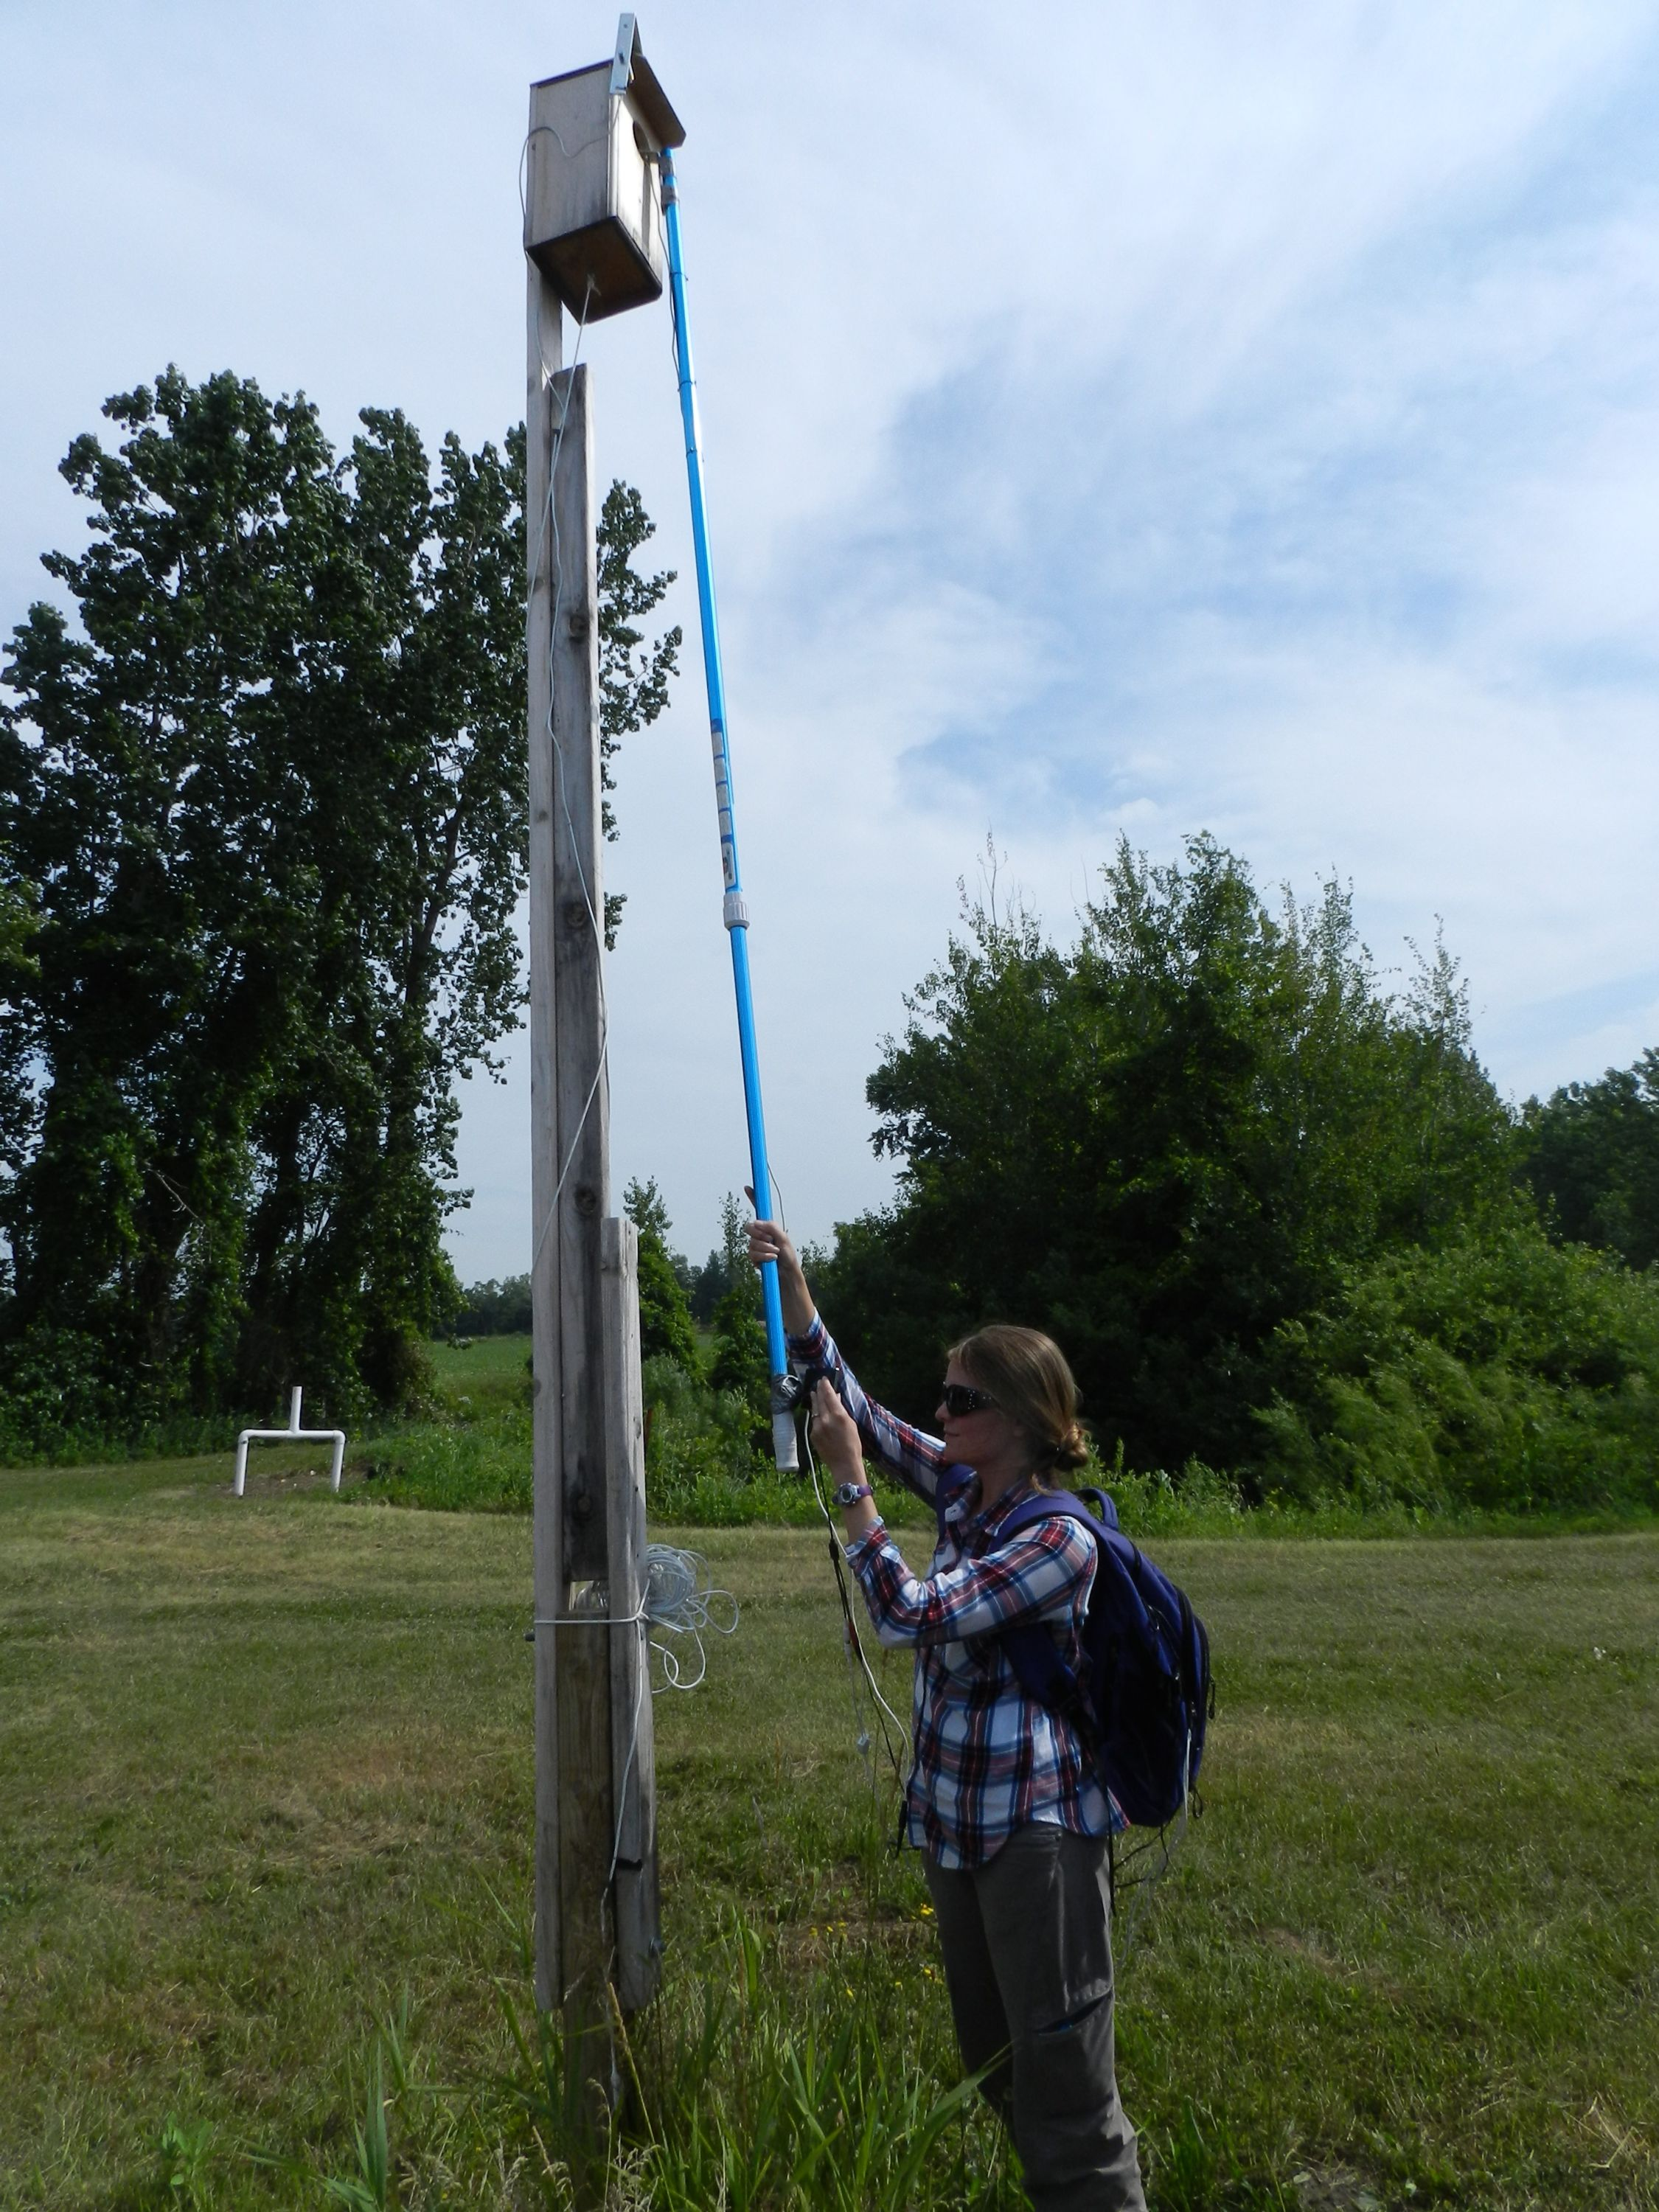 Checking for nesting activity with pole camera, Van Buren County, July 2016, photo by C. Lindell photo